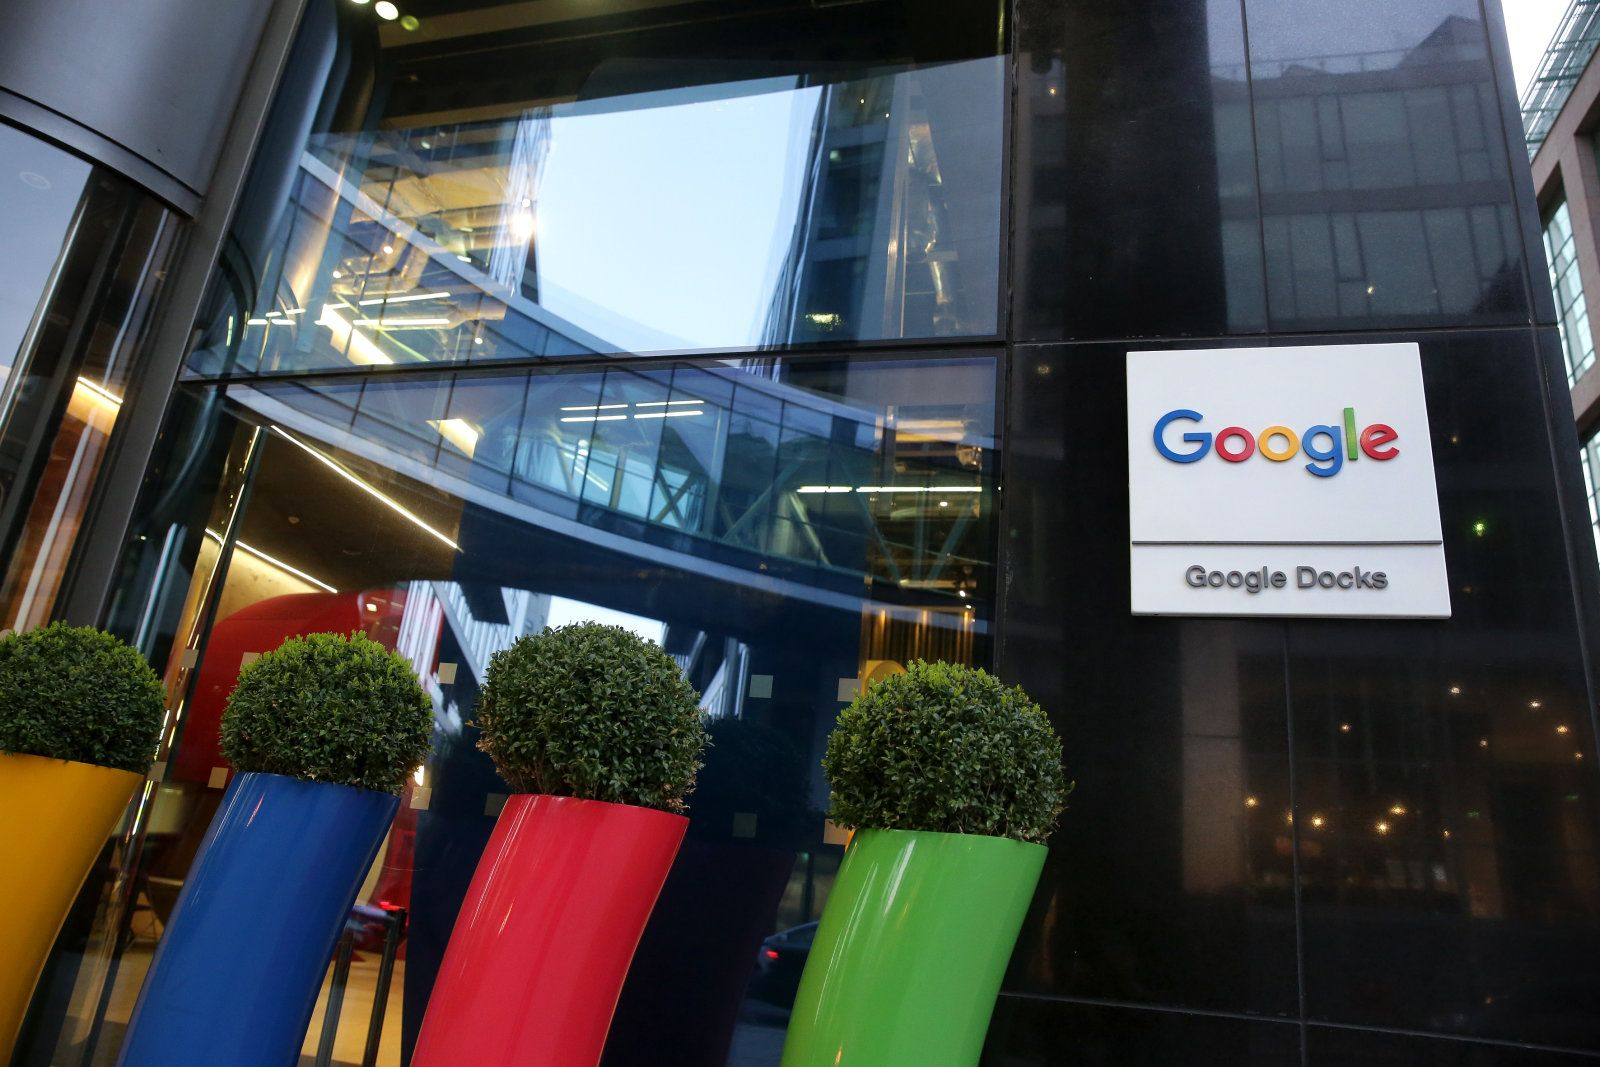 Google won't have to pay 1.3 billion in back taxes to